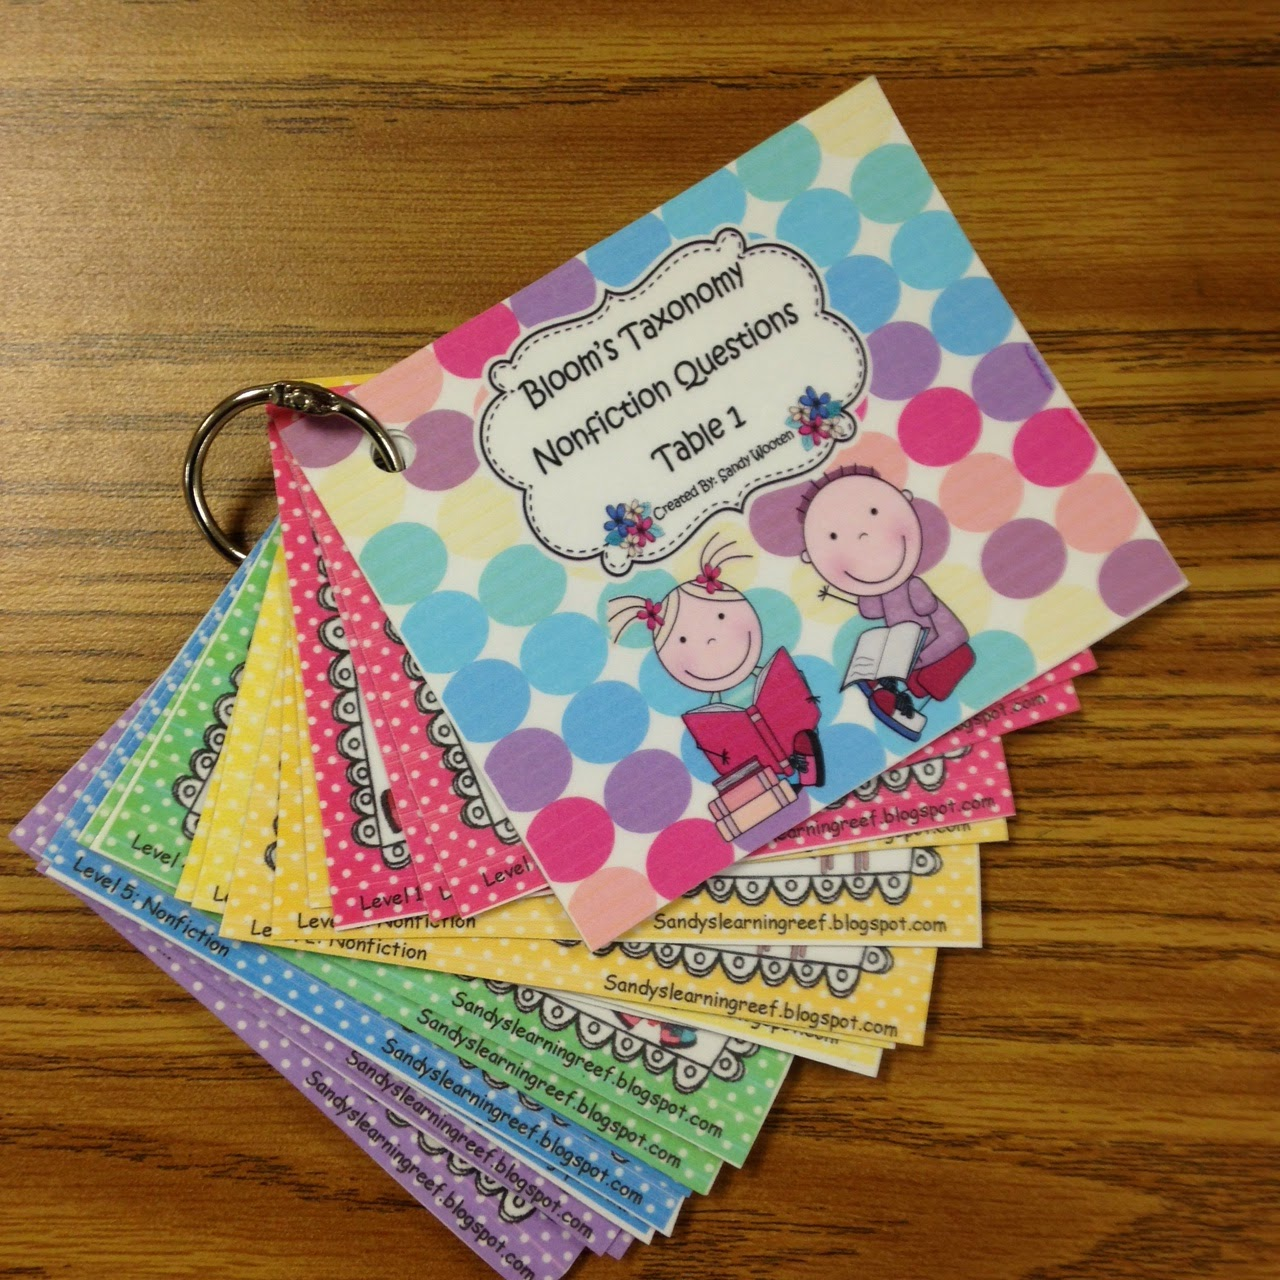 https://www.teacherspayteachers.com/Product/Blooms-Taxonomy-Text-Talk-Cards-Activities-to-Use-with-Any-Nonfiction-Book-1289035